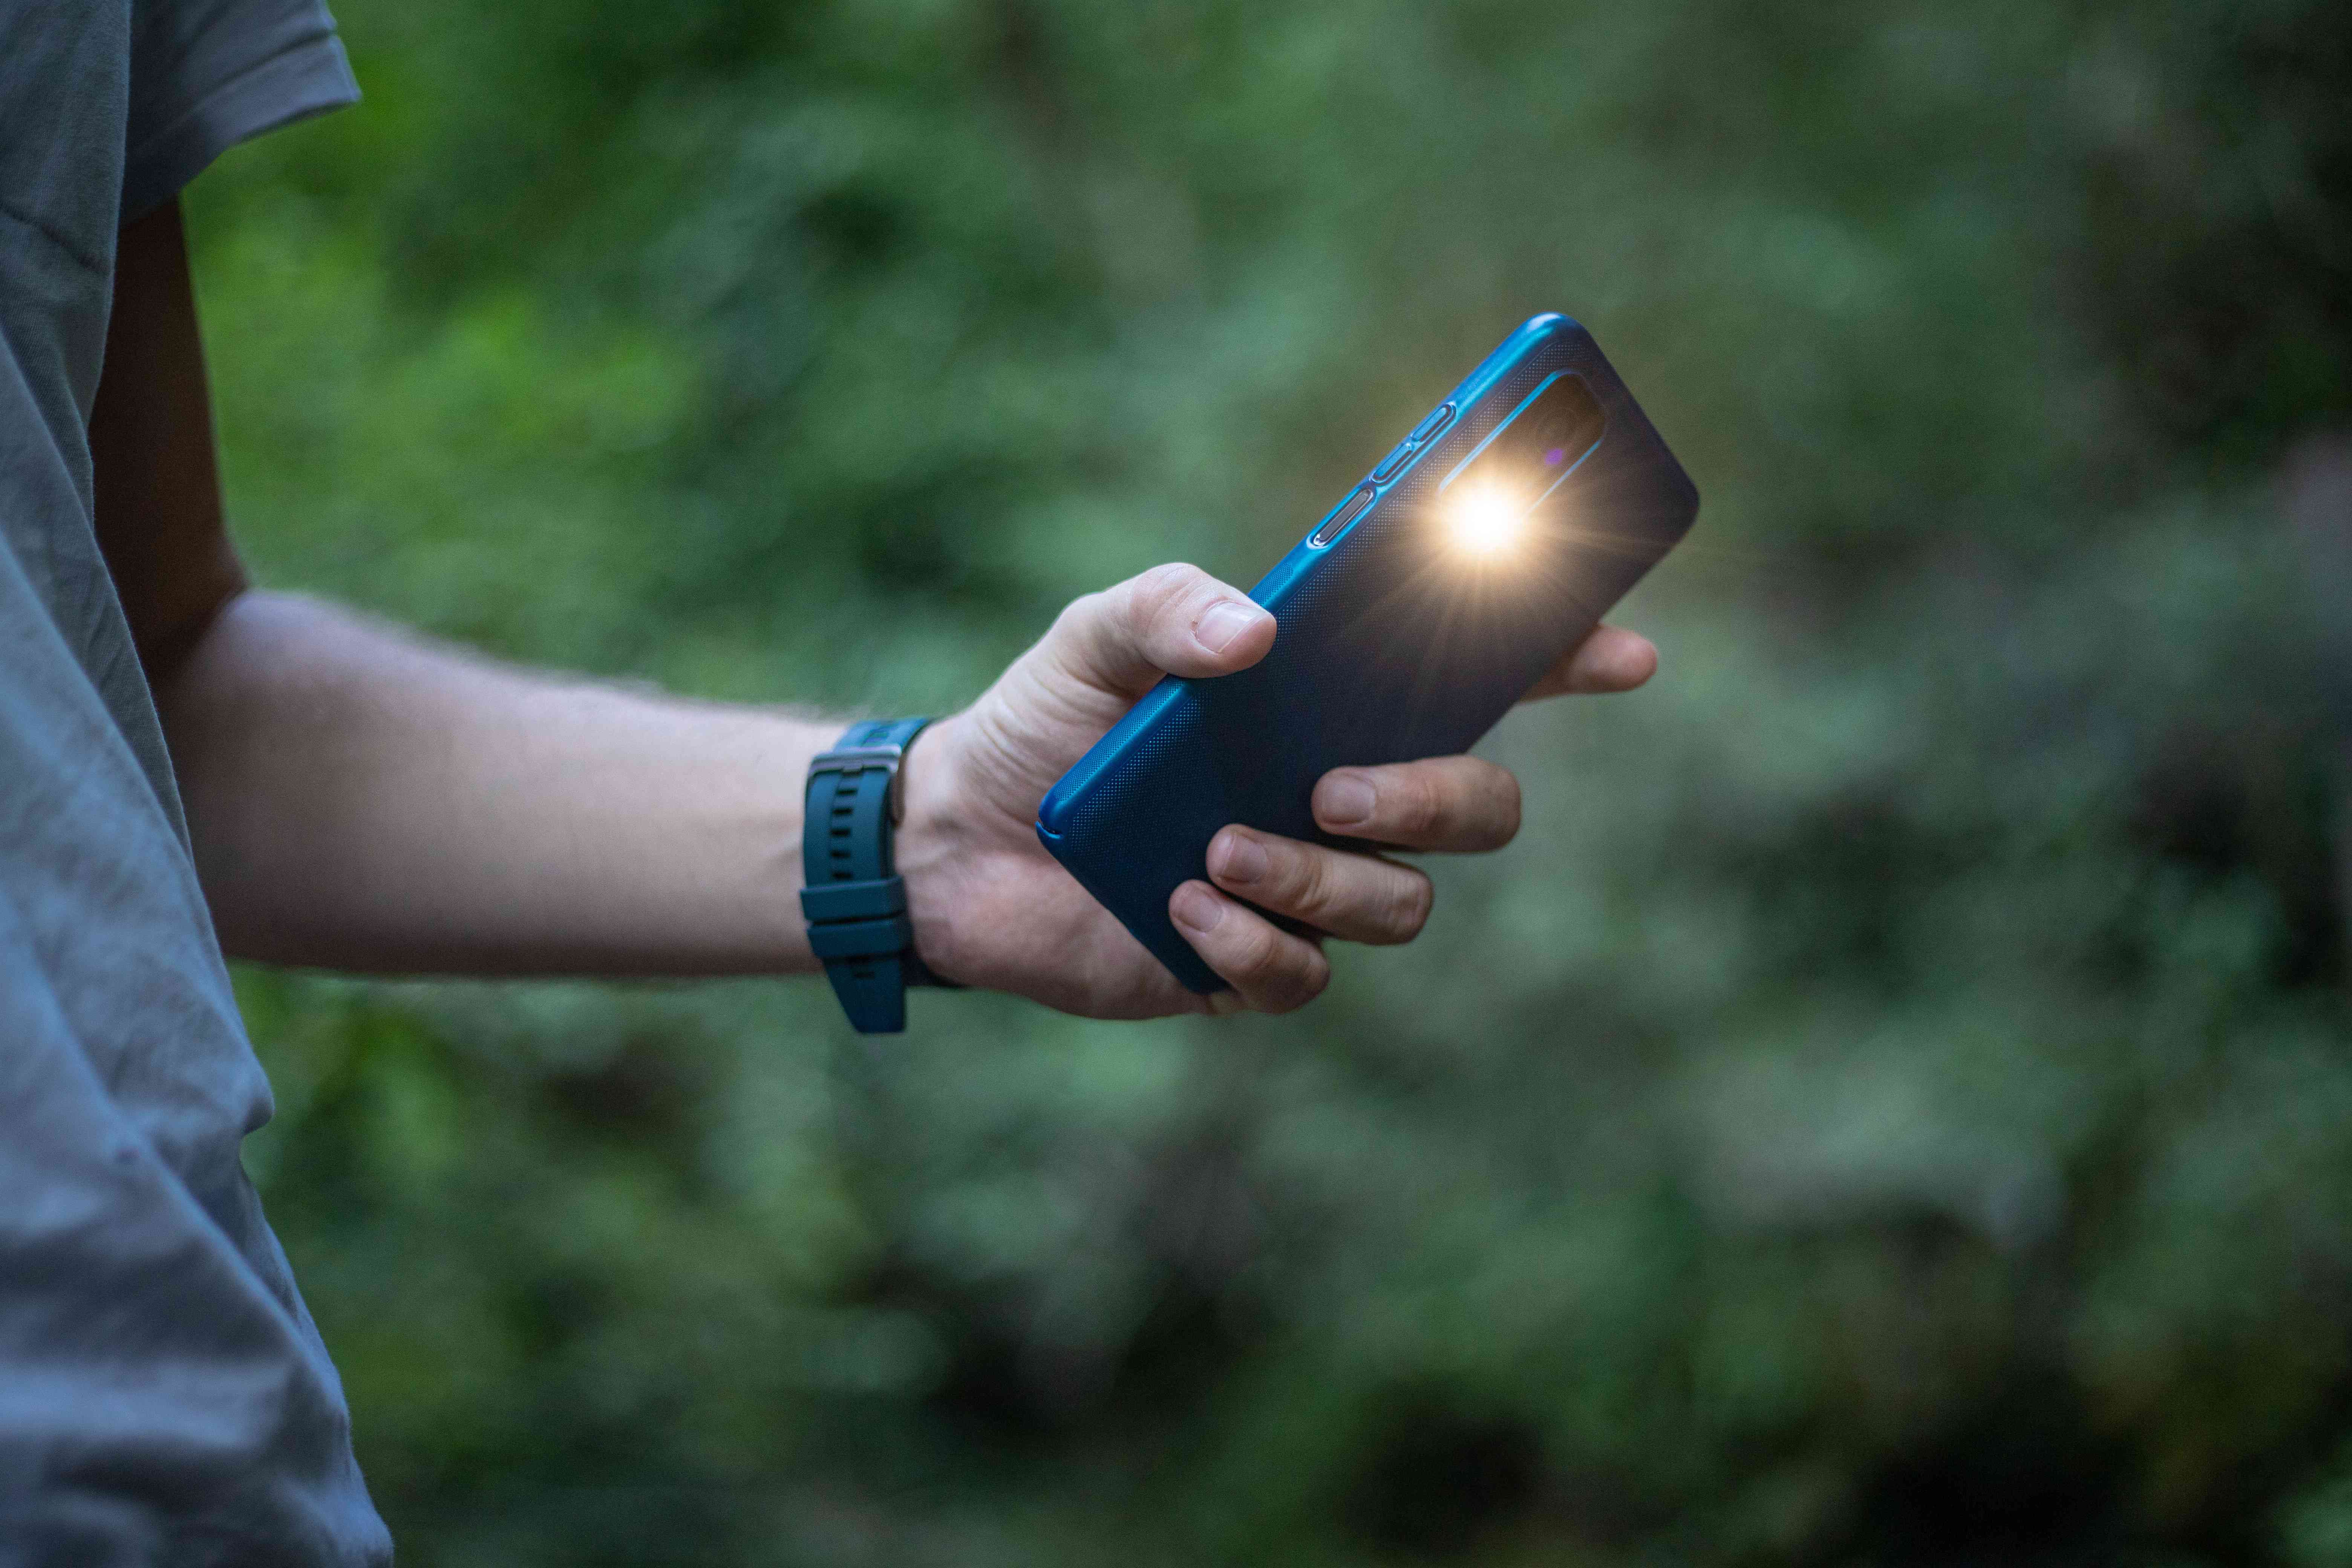 guy uses phone flash light while hiking outside on trail